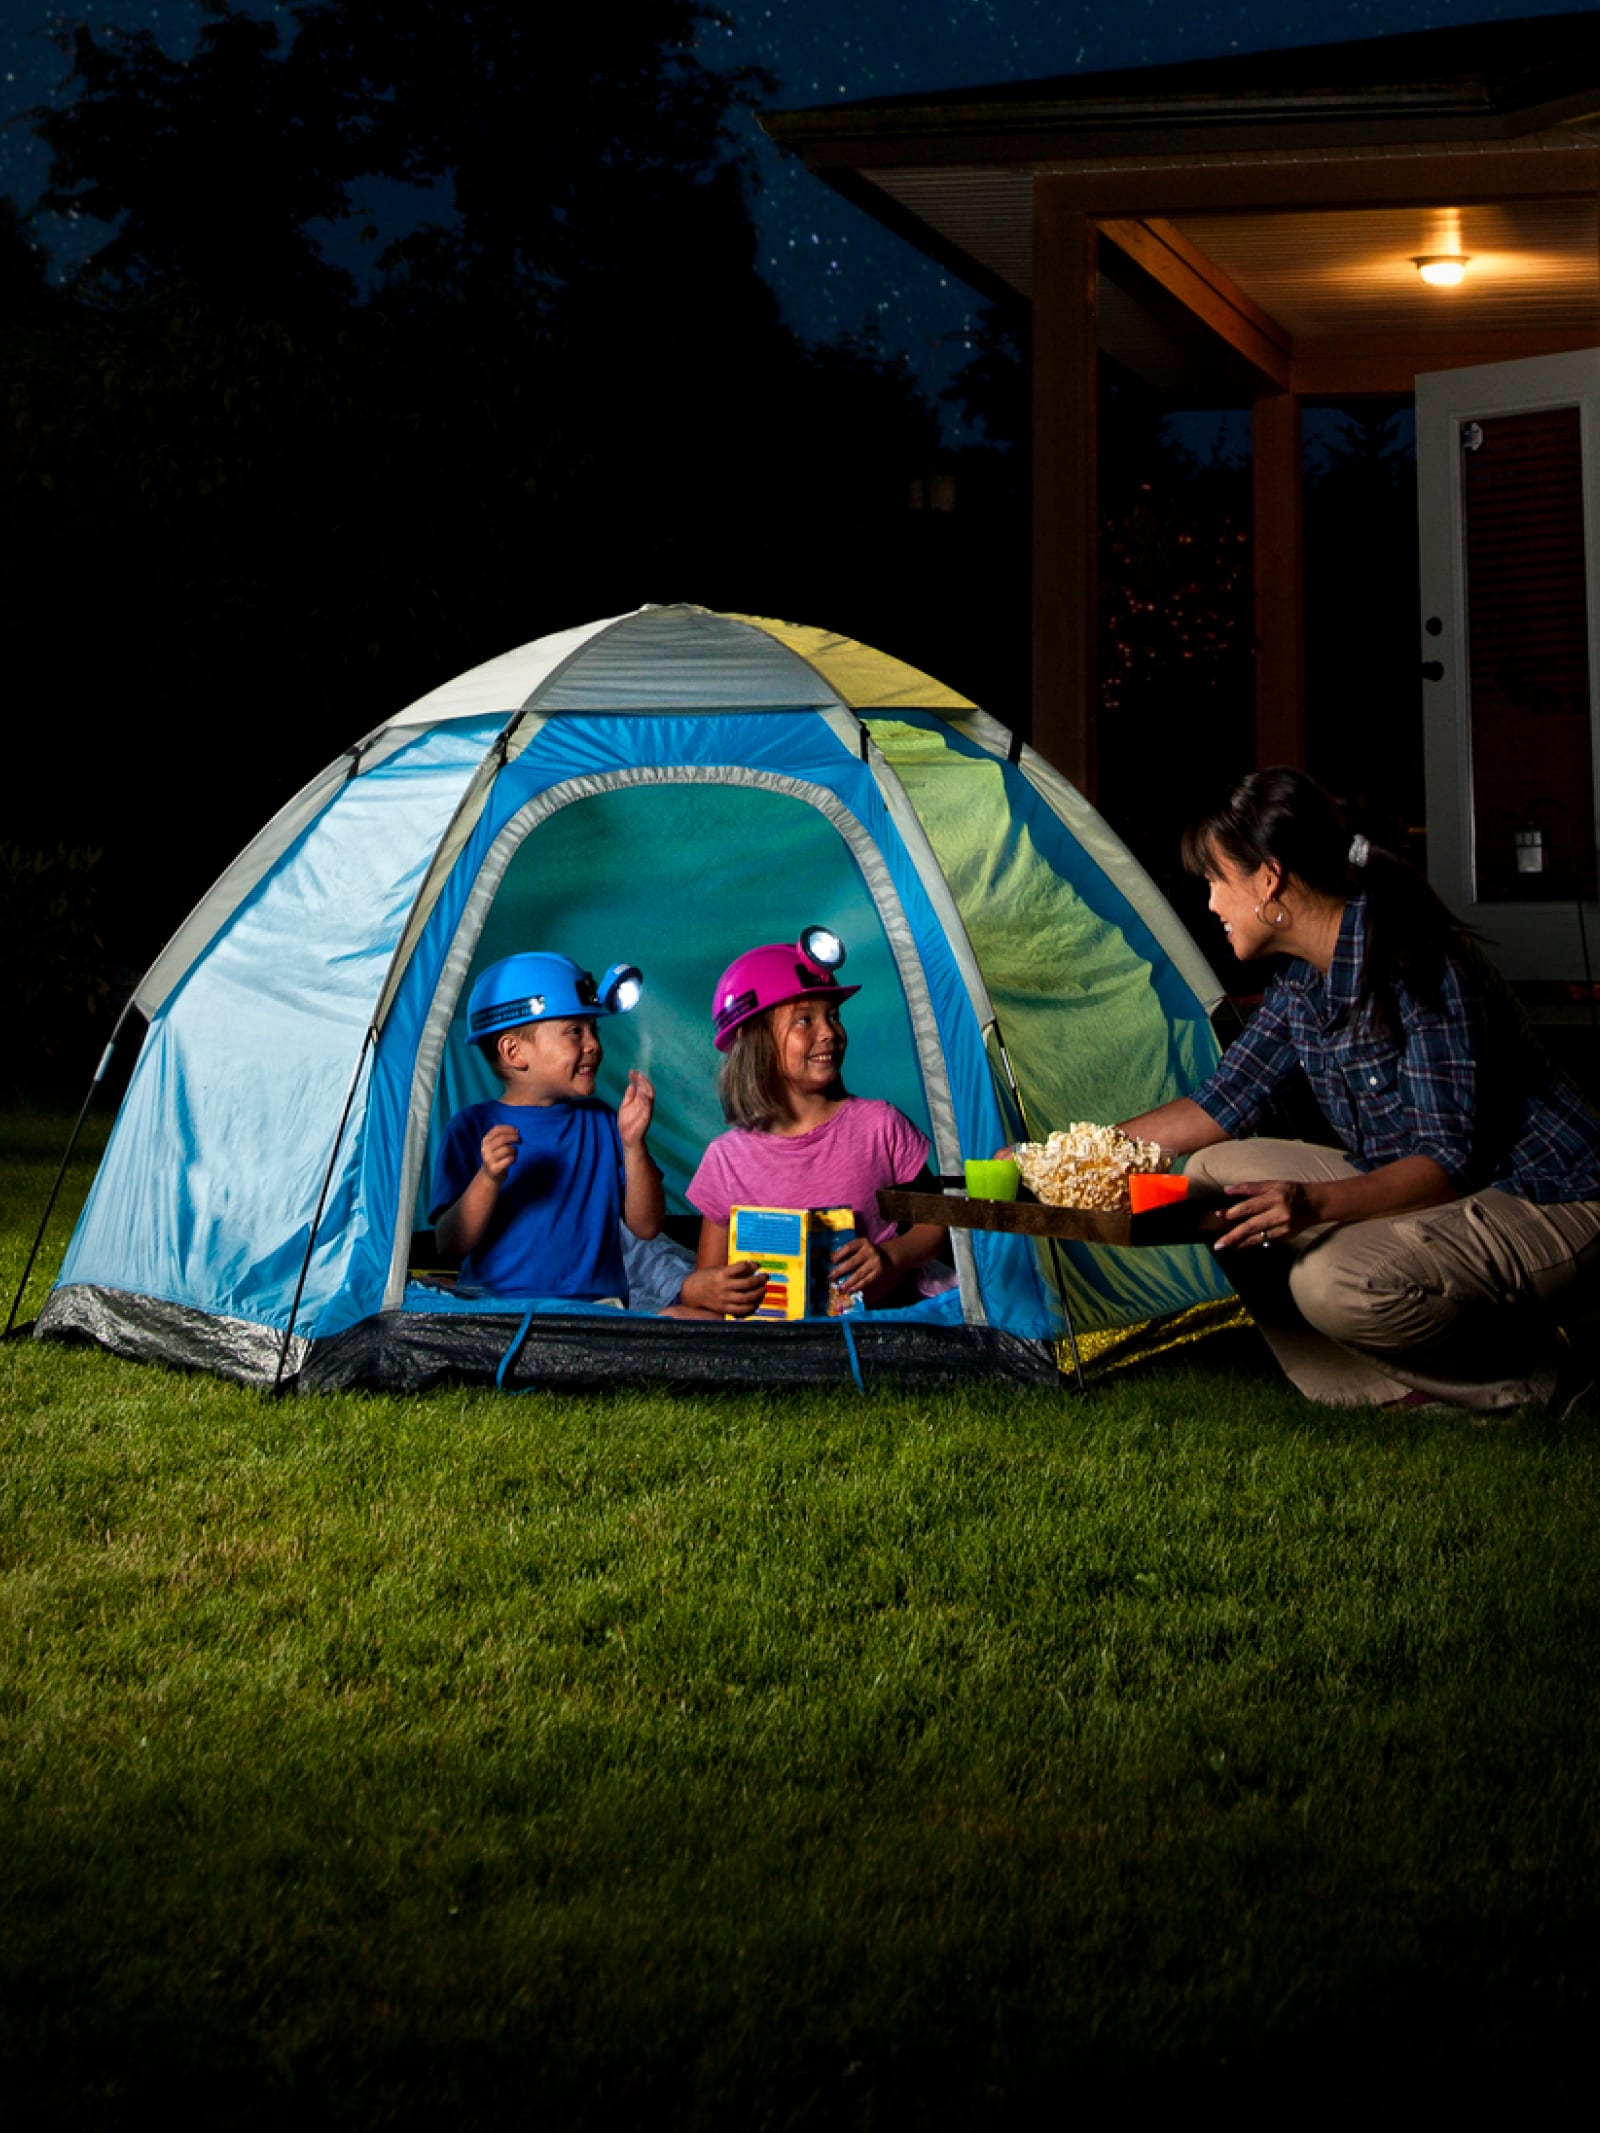 a backyard camp-out / for excited little kids / with help from mommy